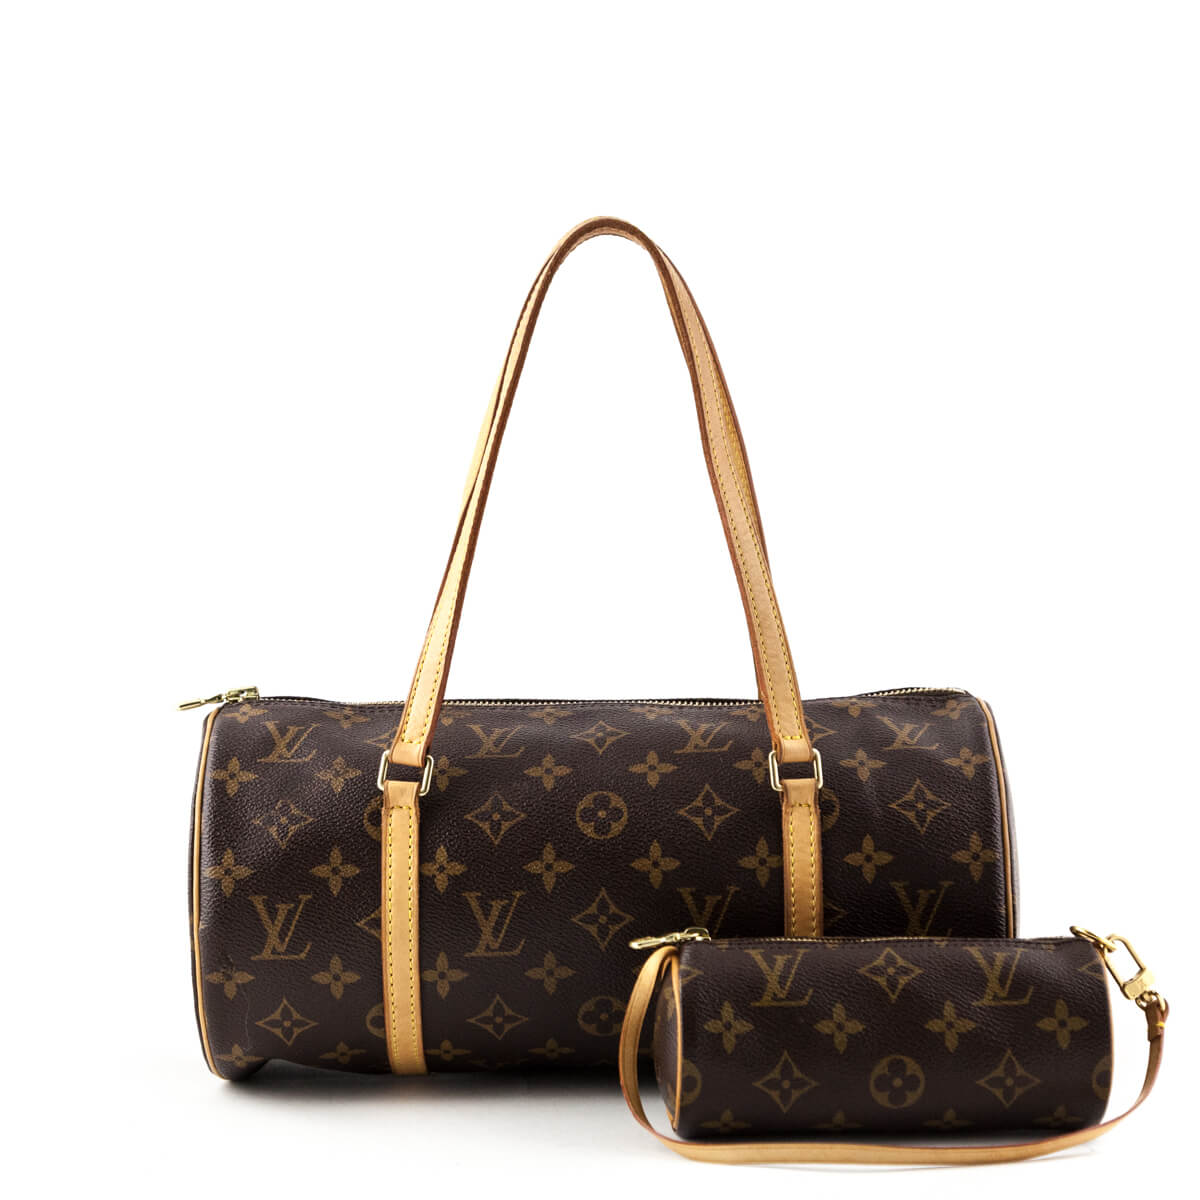 1a7ce0d8a96f Louis Vuitton Monogram Papillon 30 with Pouch - LOVE that BAG - Preowned  Authentic Designer Handbags ...